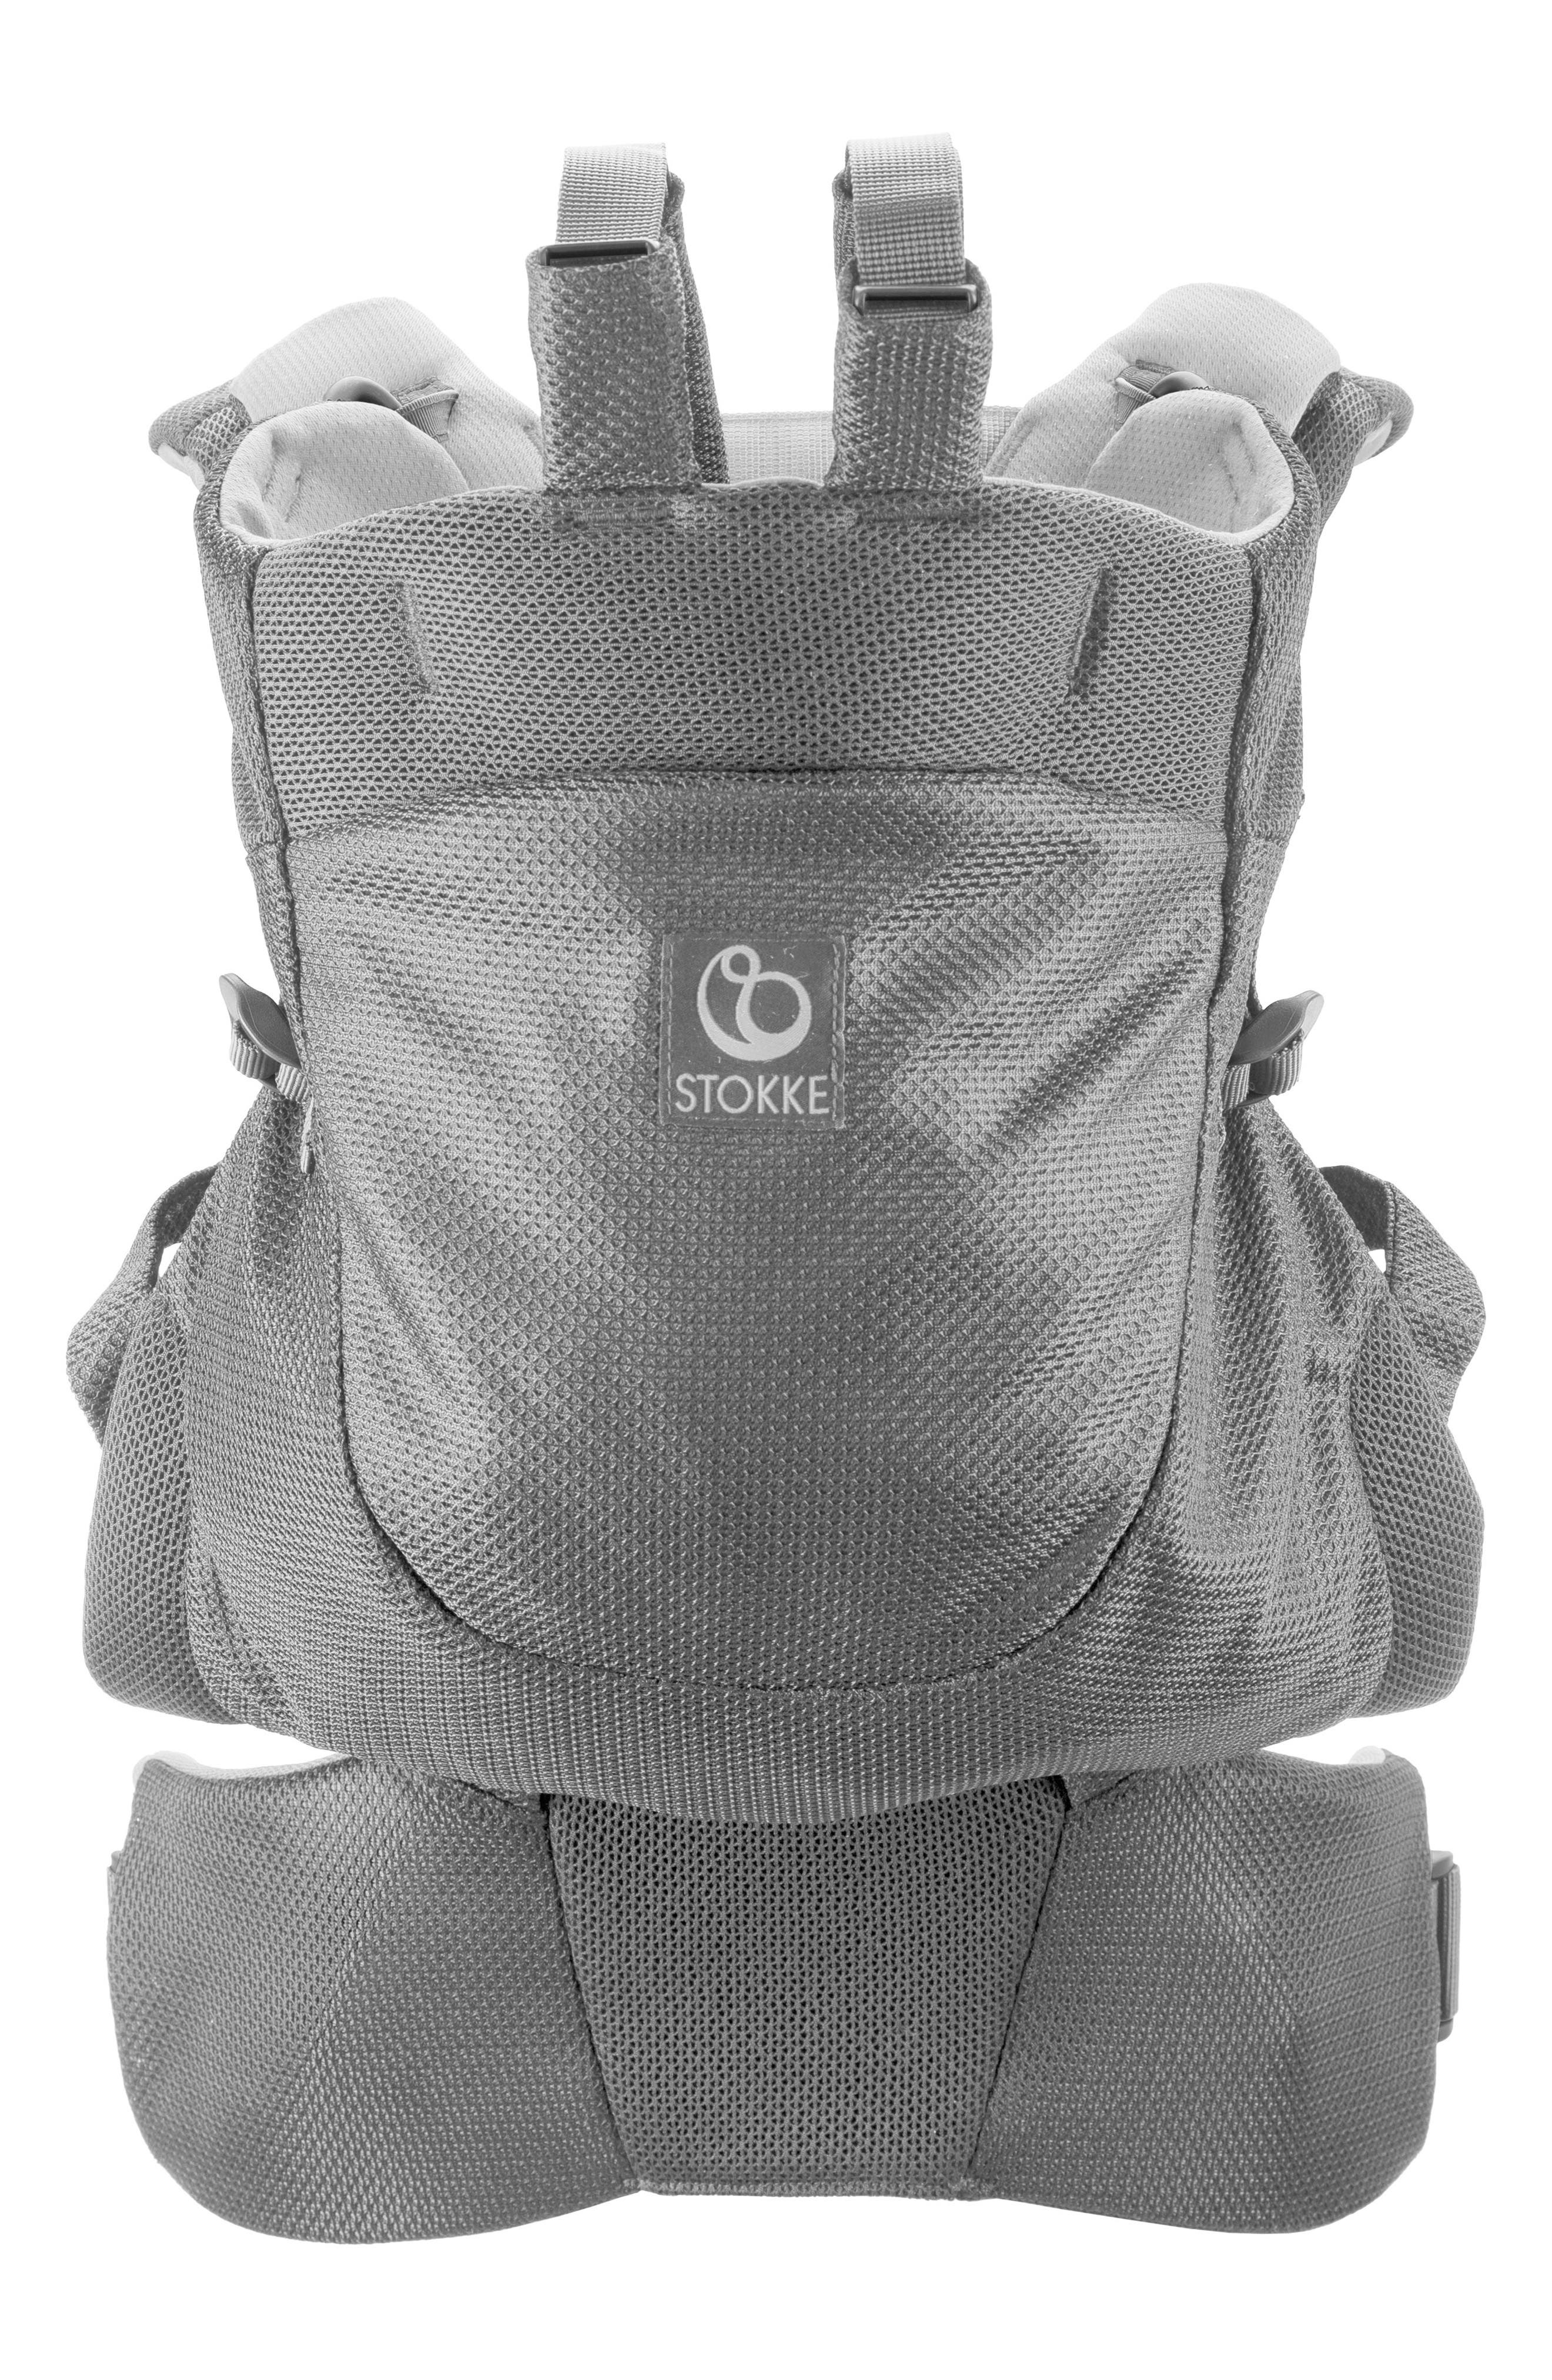 Stokke MyCarrier Front/Back 3-in-1 Baby Carrier